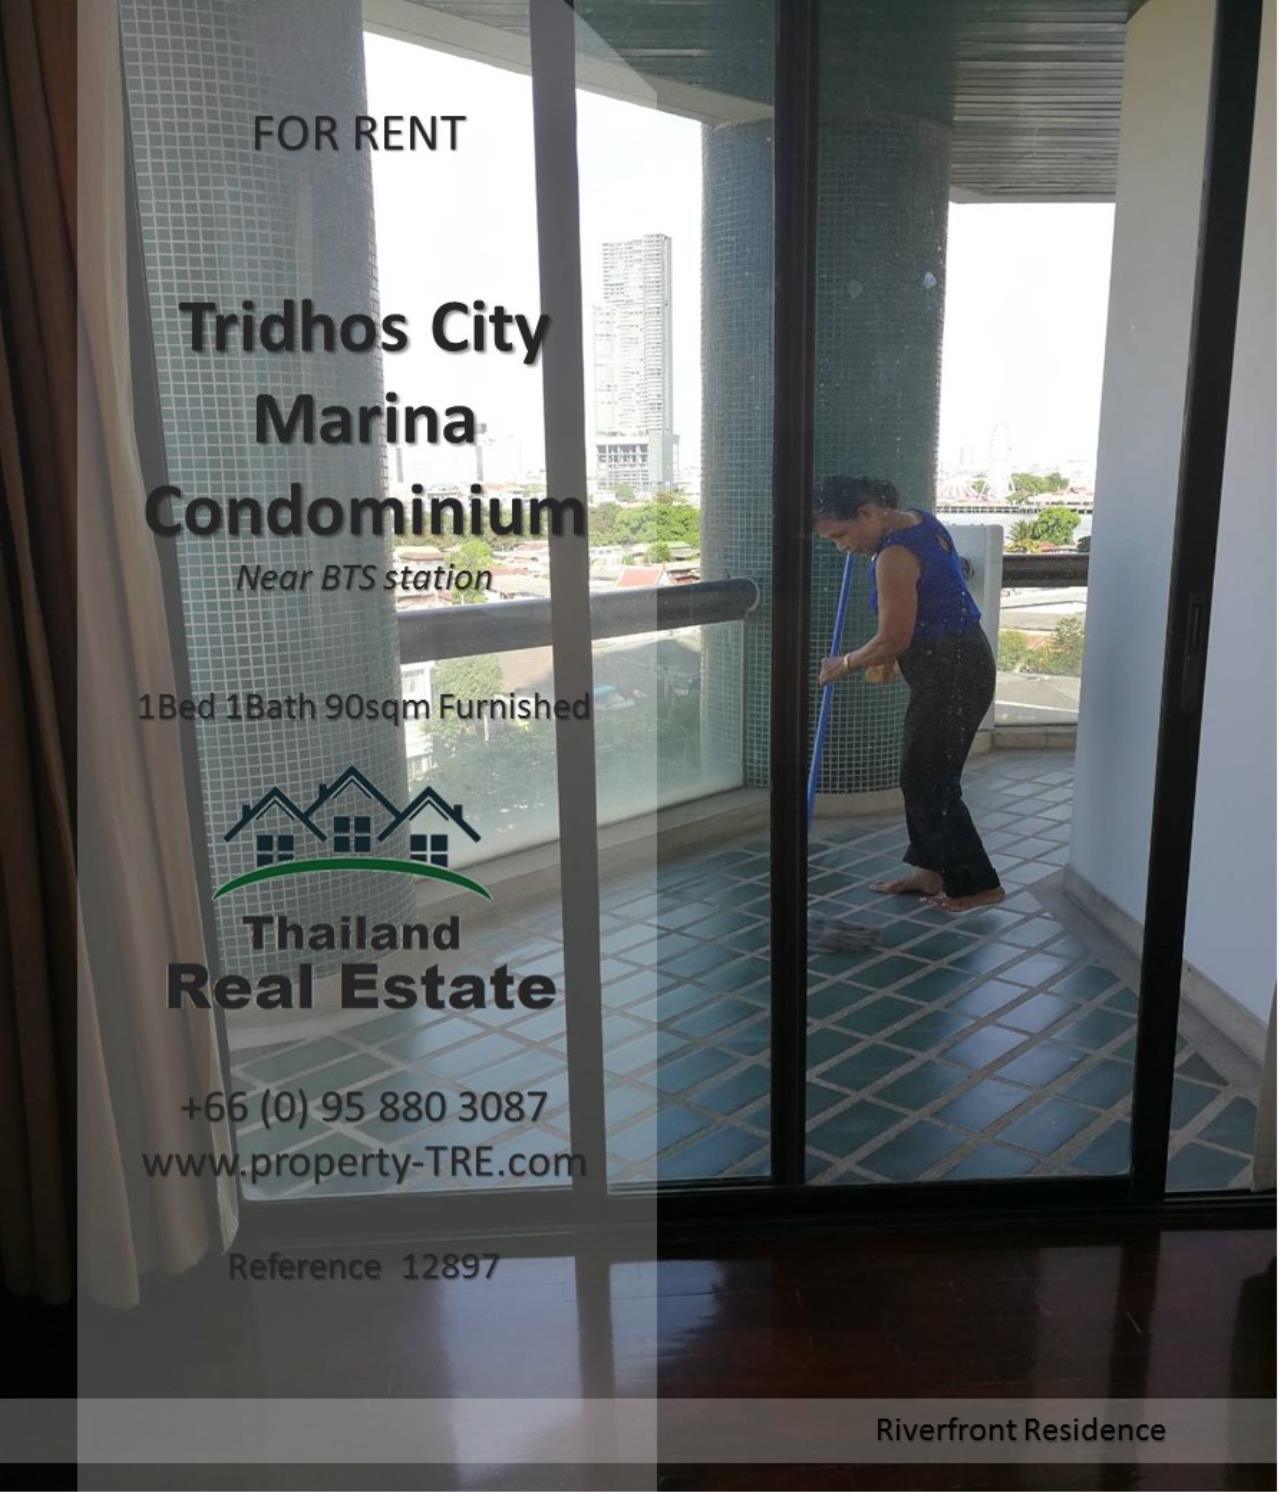 Thailand Real Estate Agency's 1 Bedroom Condo at Tridhos City Marina near 2 BTS Stations(12897) 7